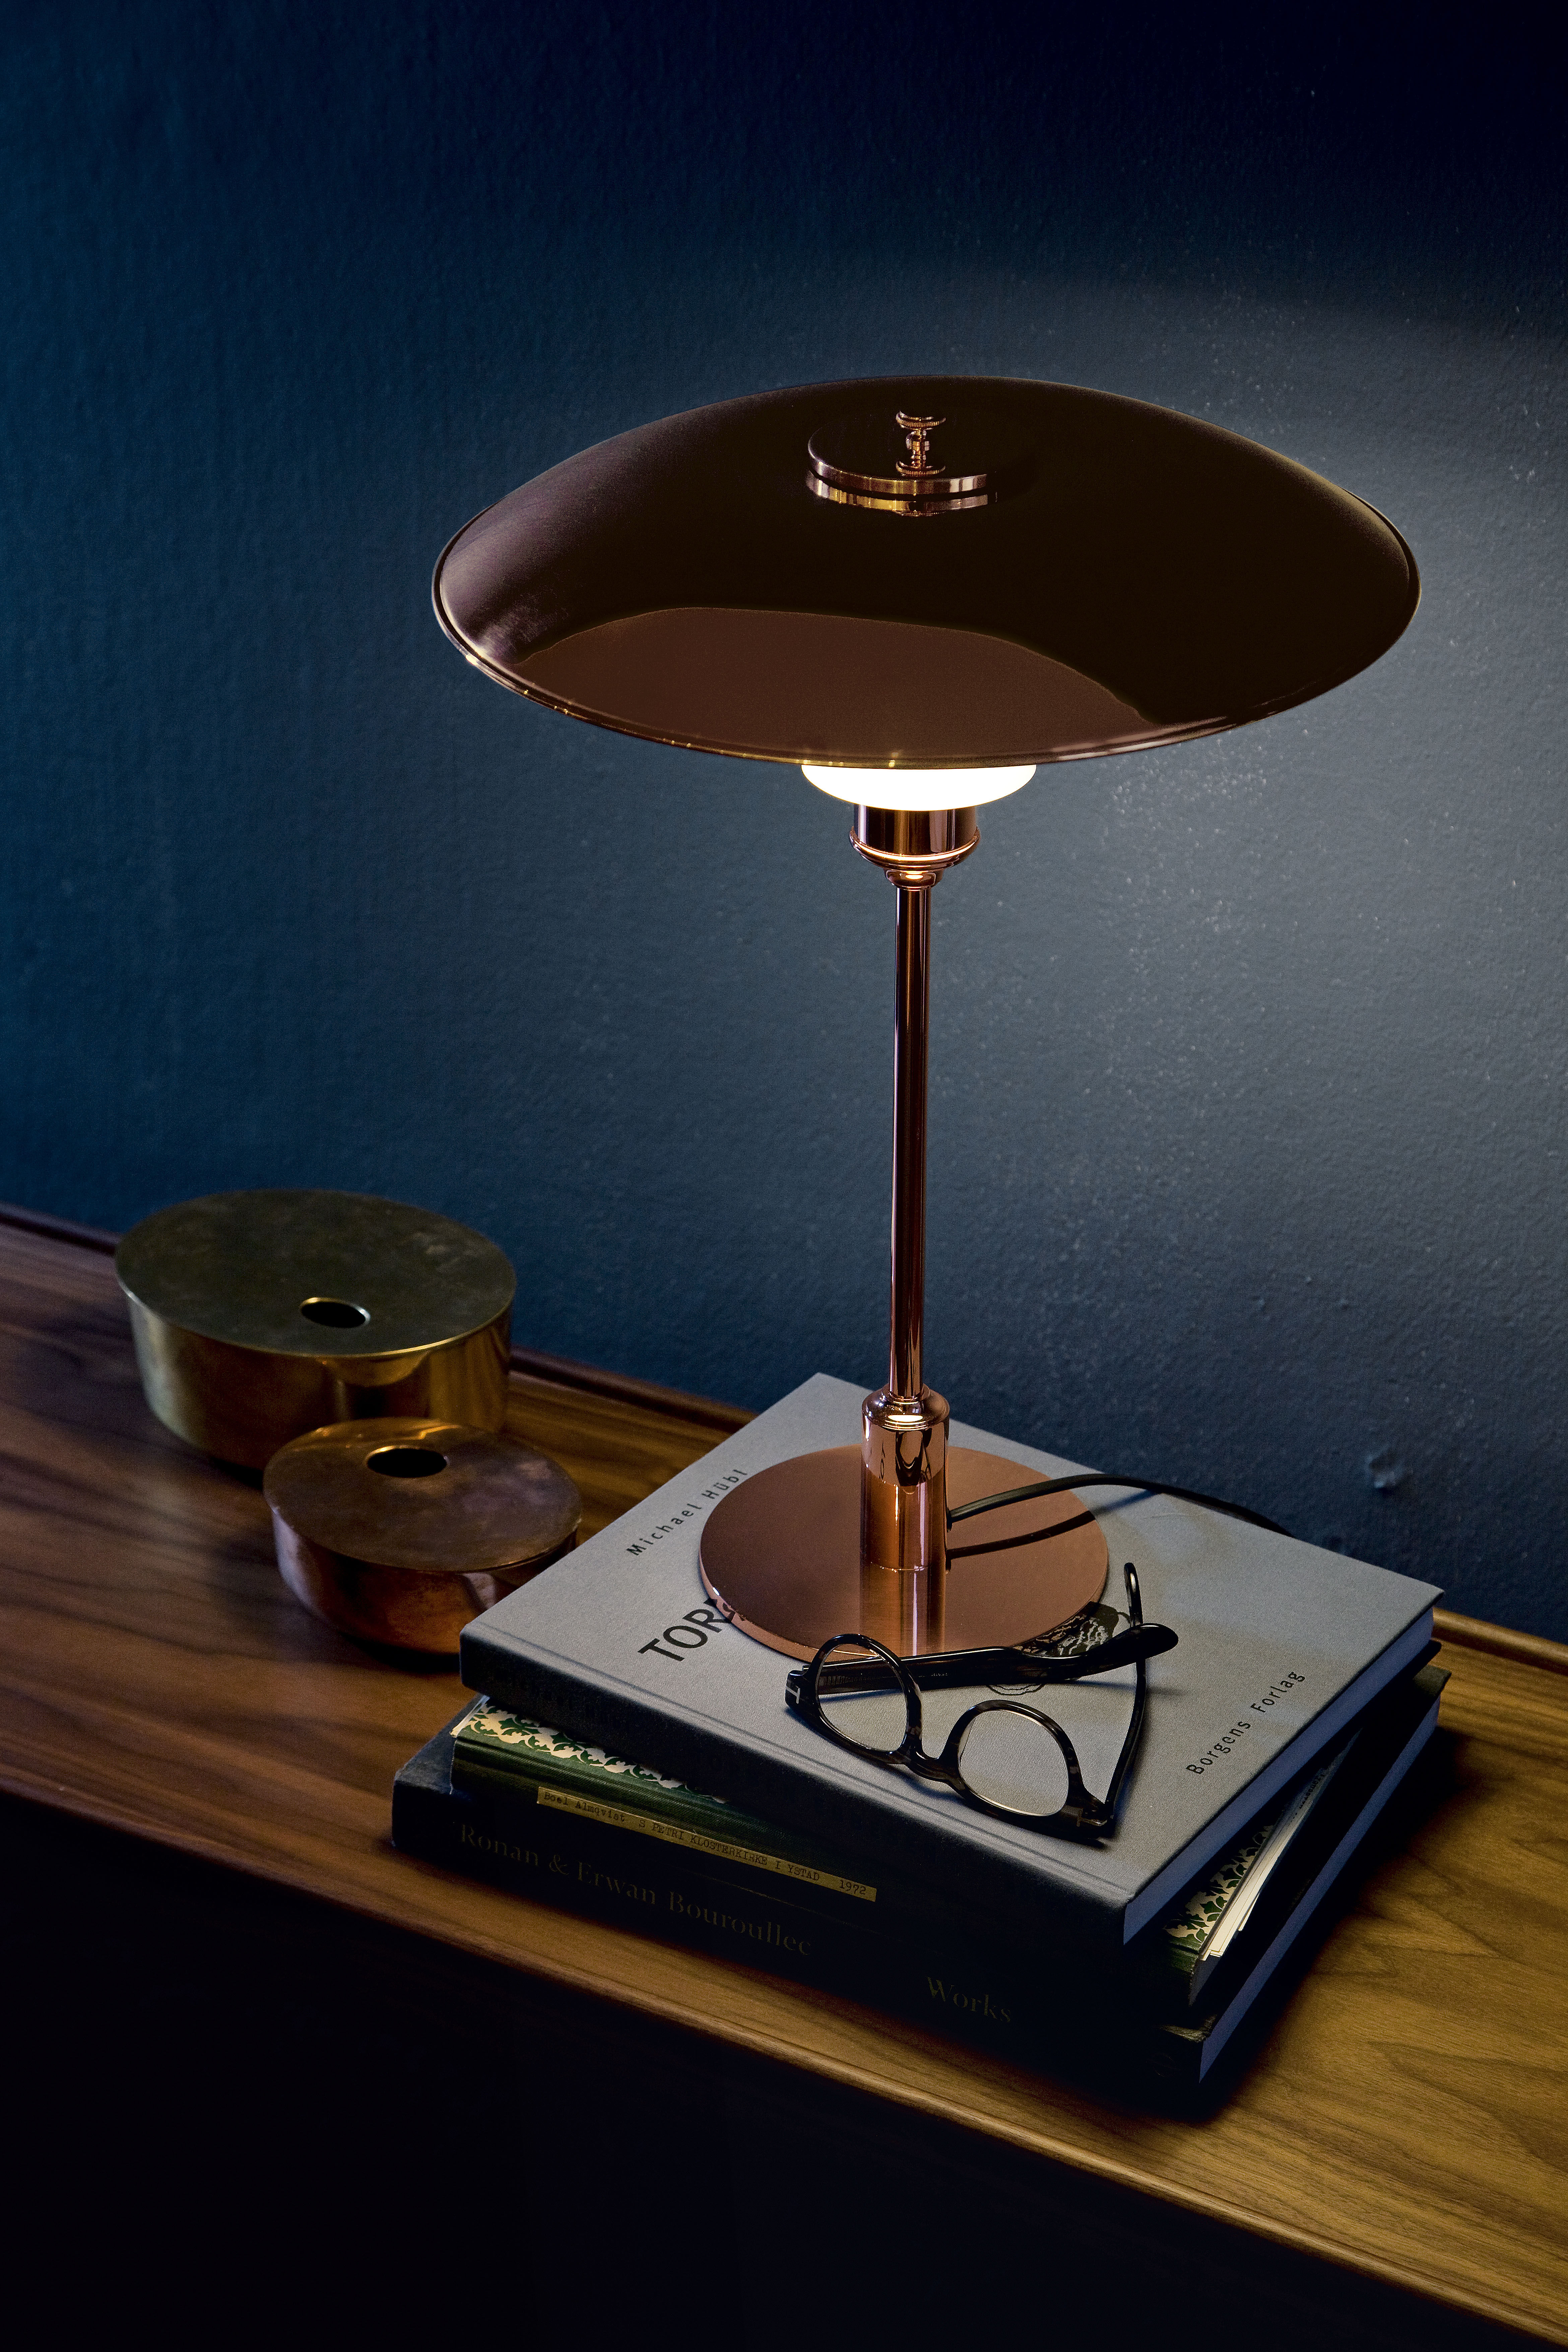 ph 3 2 table lamp copper limited edition copper by louis poulsen made in design uk. Black Bedroom Furniture Sets. Home Design Ideas